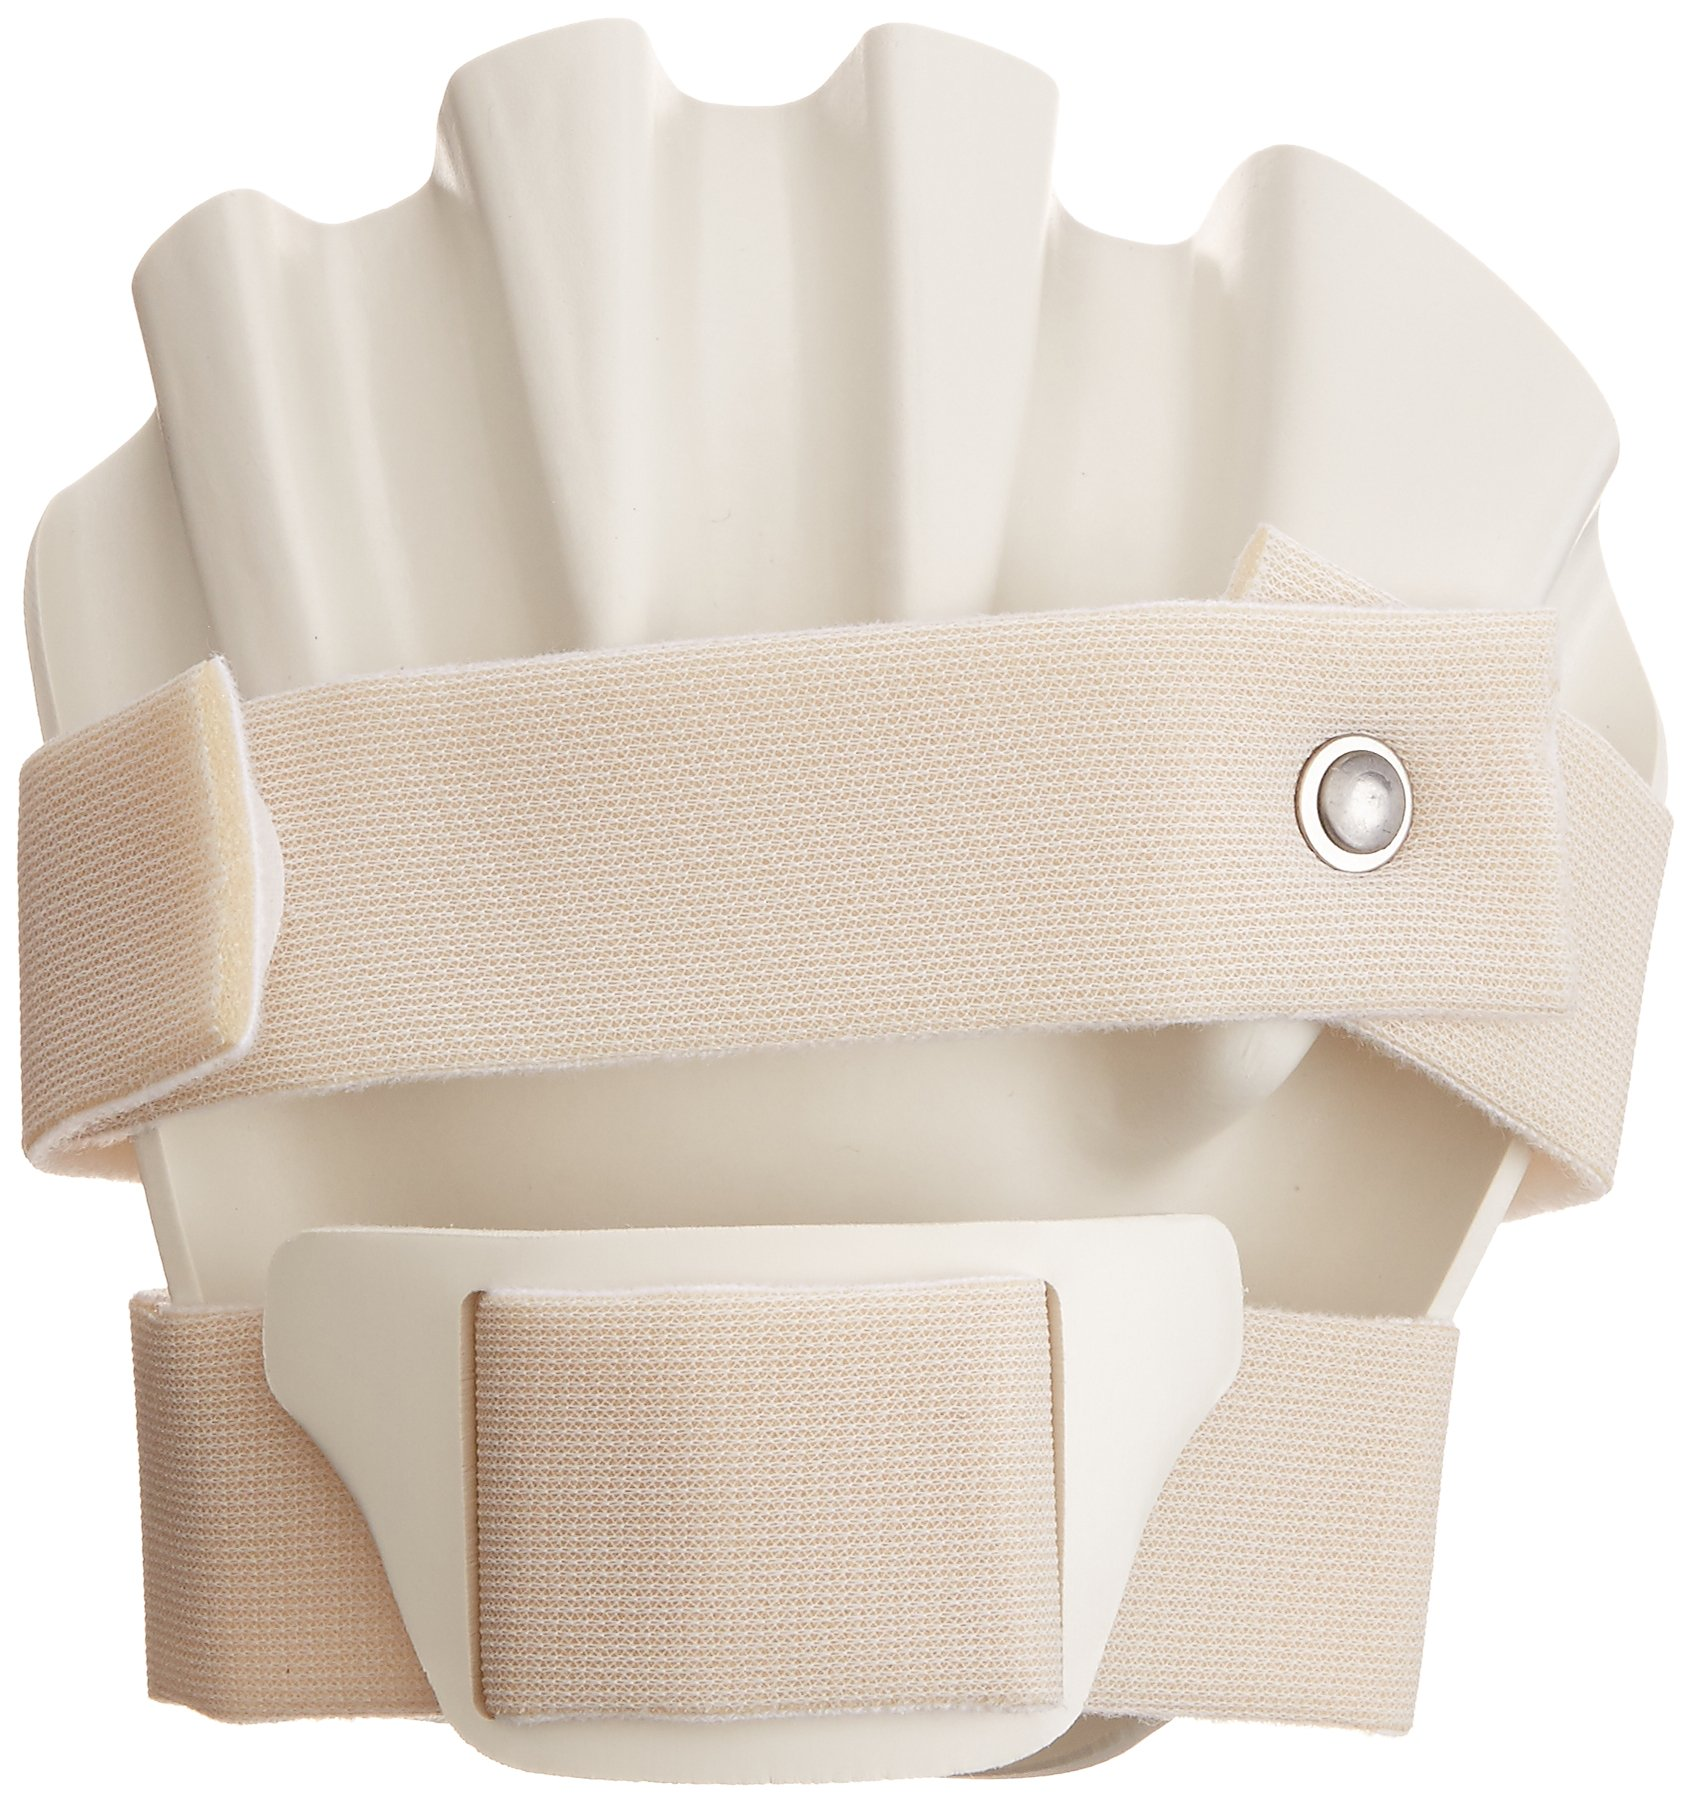 Cheap Splint Immobilizer Find Splint Immobilizer Deals On